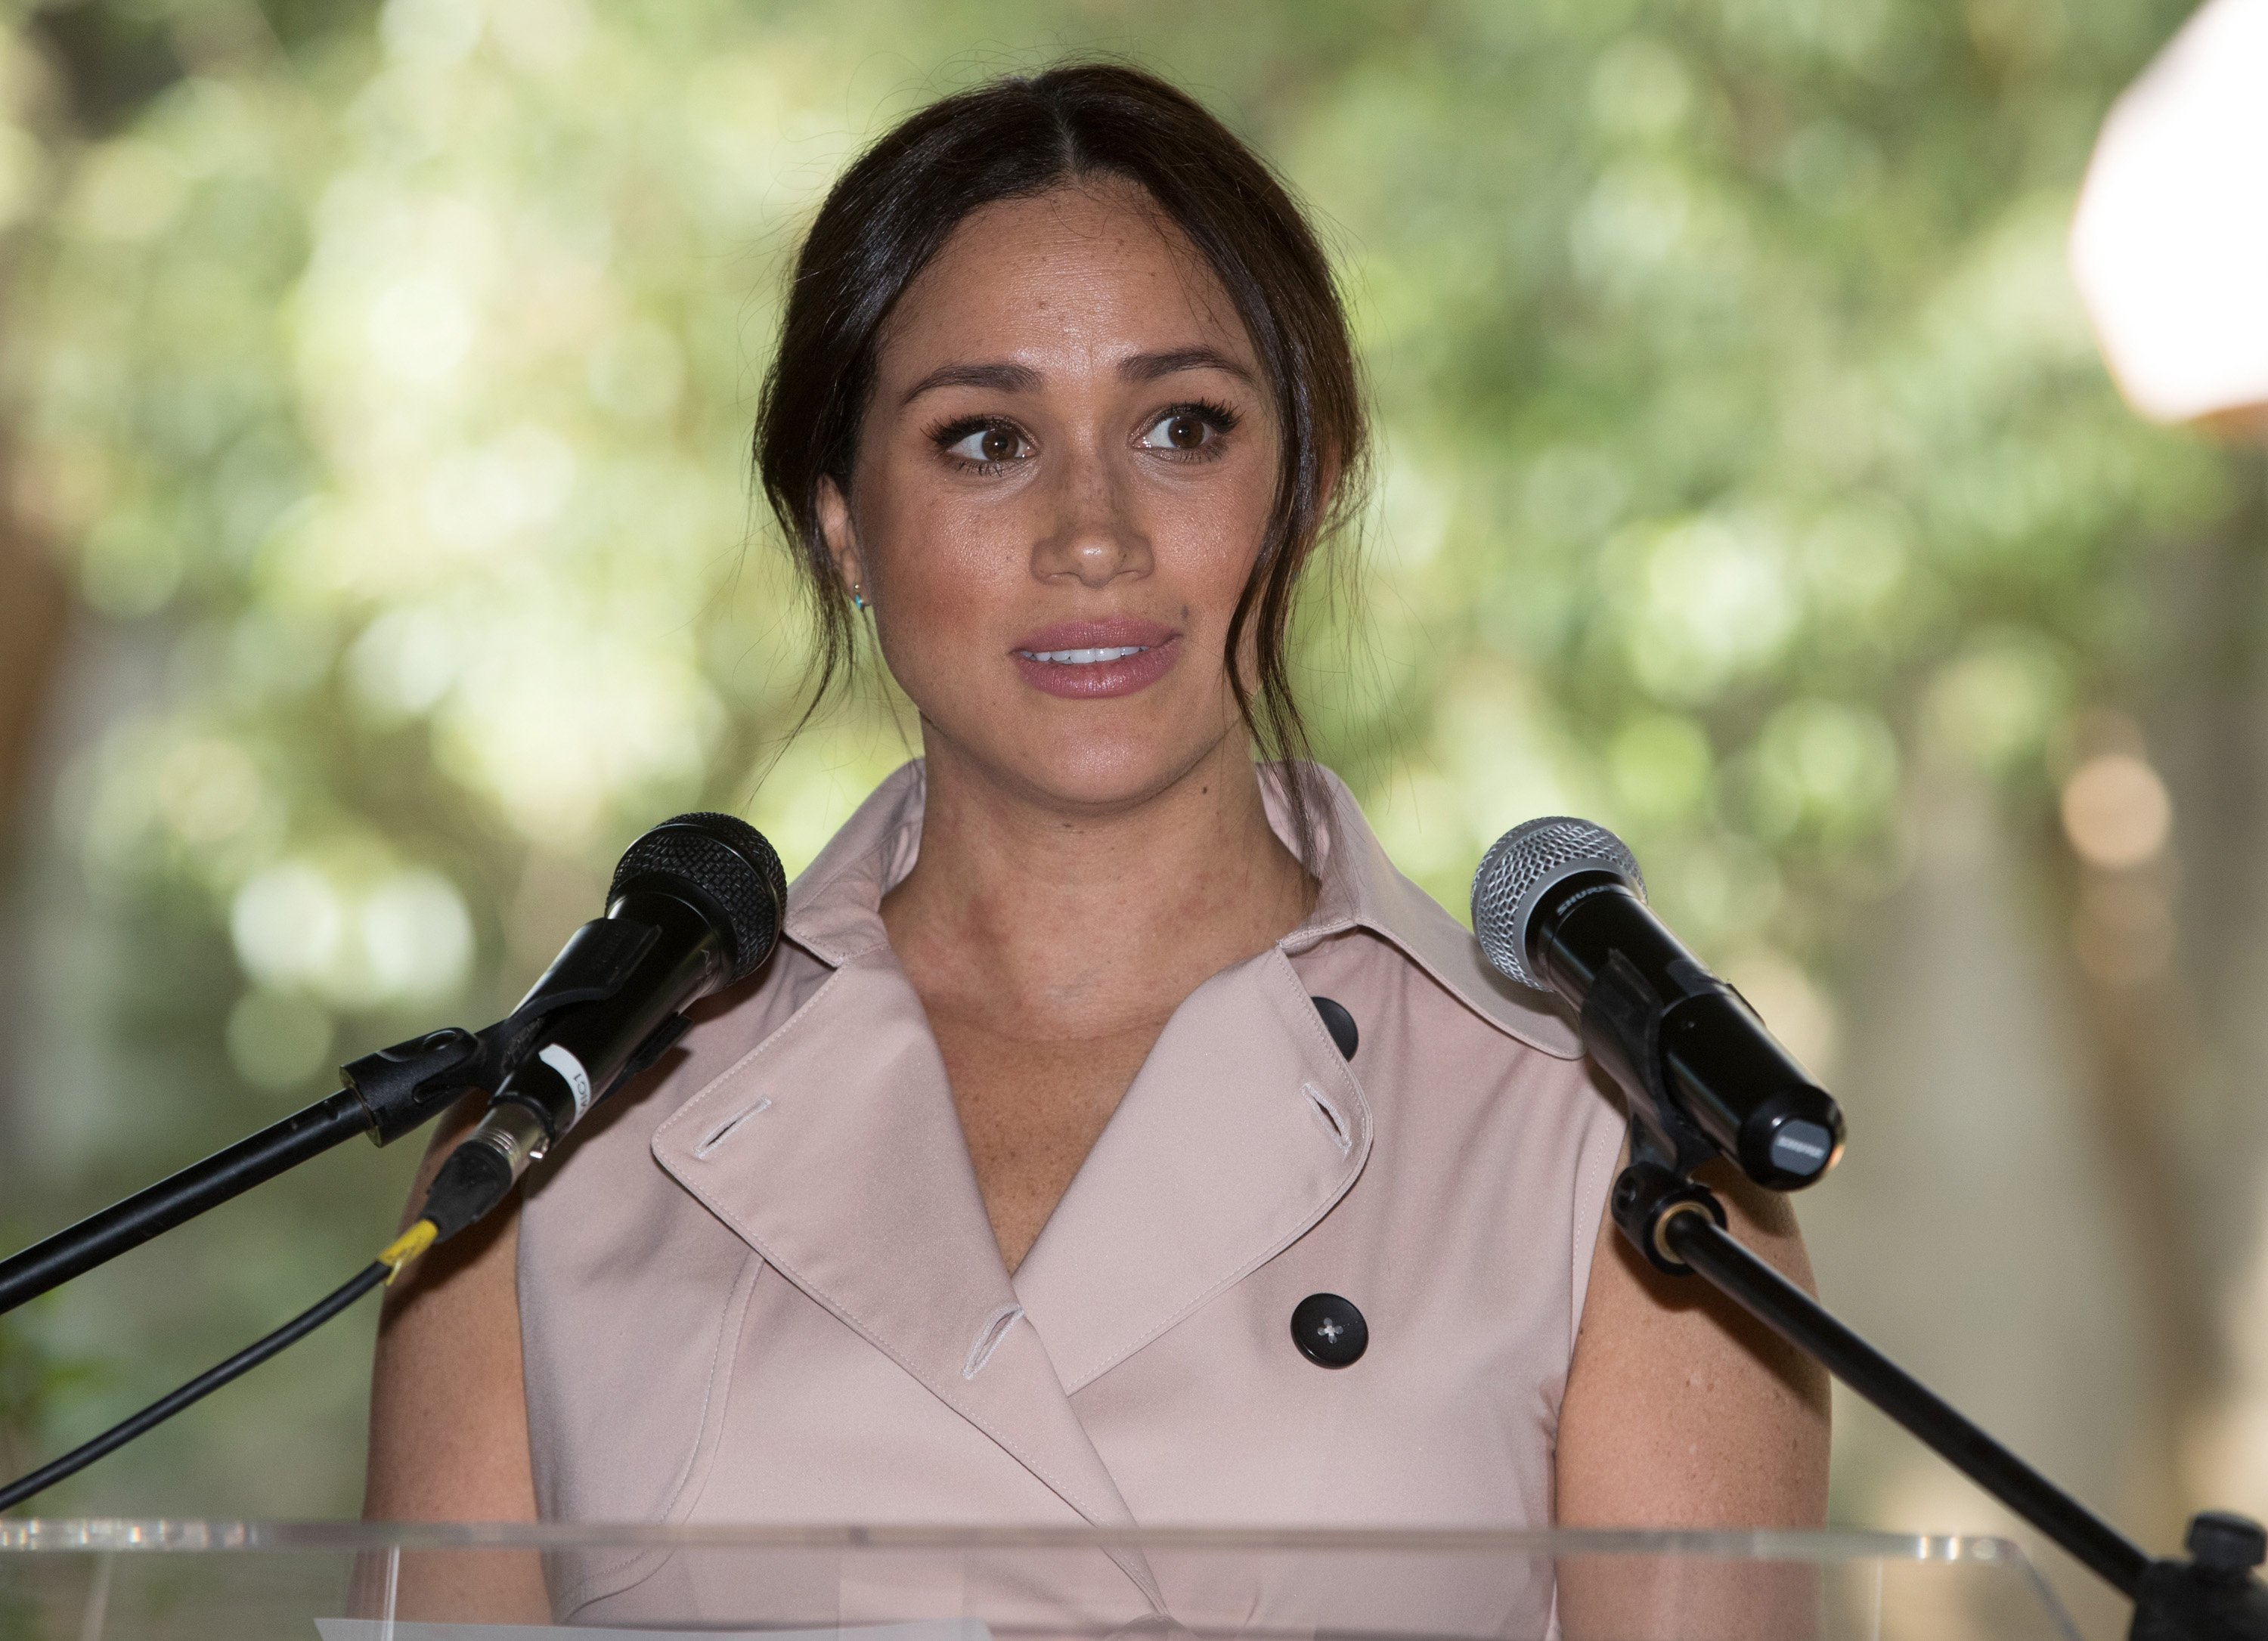 Meghan Markle holding back tears: 'Not many people have asked if I'm OK'